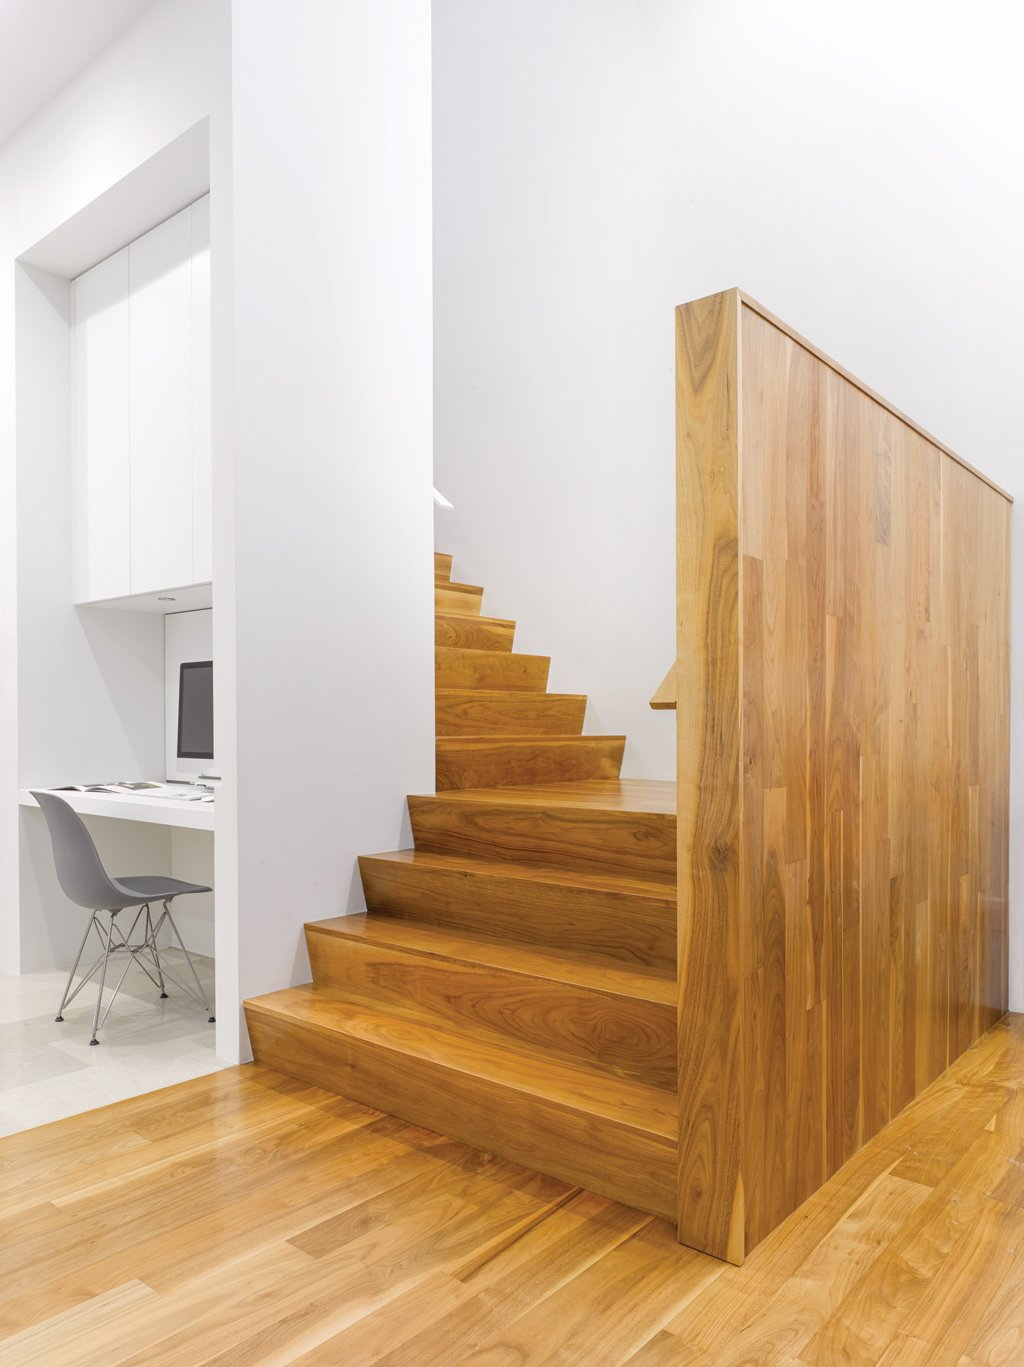 """Staircase and Wood Tread """"We composed the house to have its highest, brightest space in the middle,"""" says Paul Raff. Warm wood stairs lead to the second floor, which houses guest bedrooms, bath, and a kitchenette for the family's frequent visitors.  190+ Best Modern Staircase Ideas from A Modern Toronto House Covered by a Contemporary Solar Screen"""